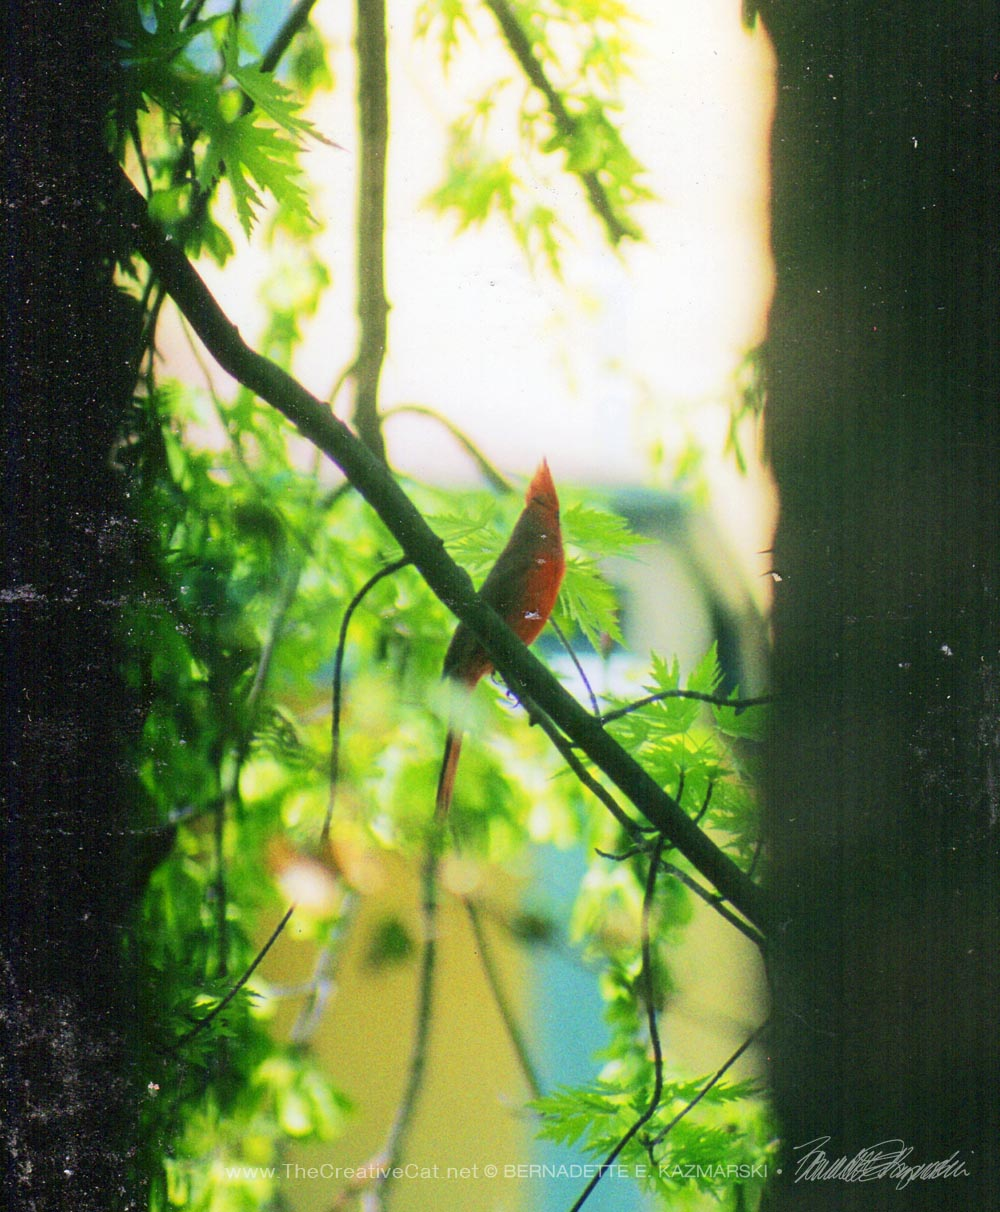 A cardinal seen between the porch pillar and a tree.